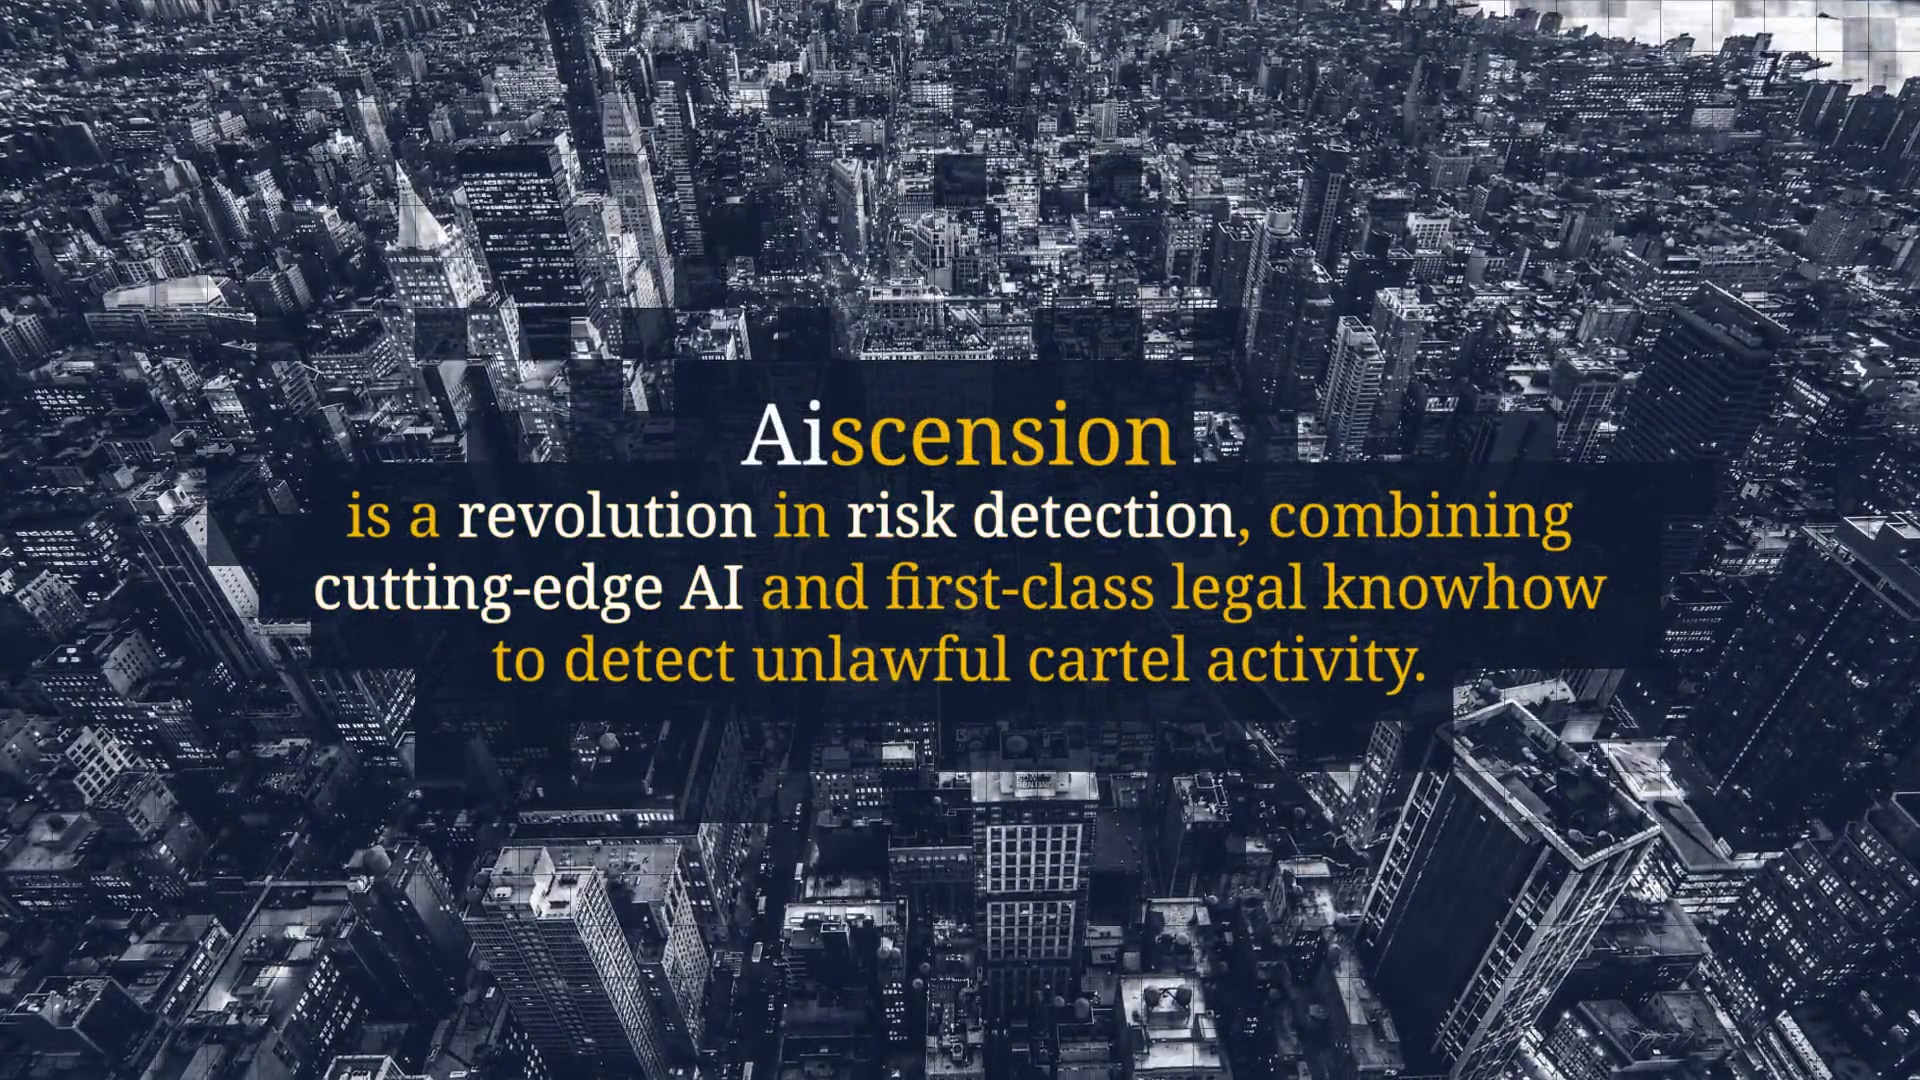 What is Aiscension?